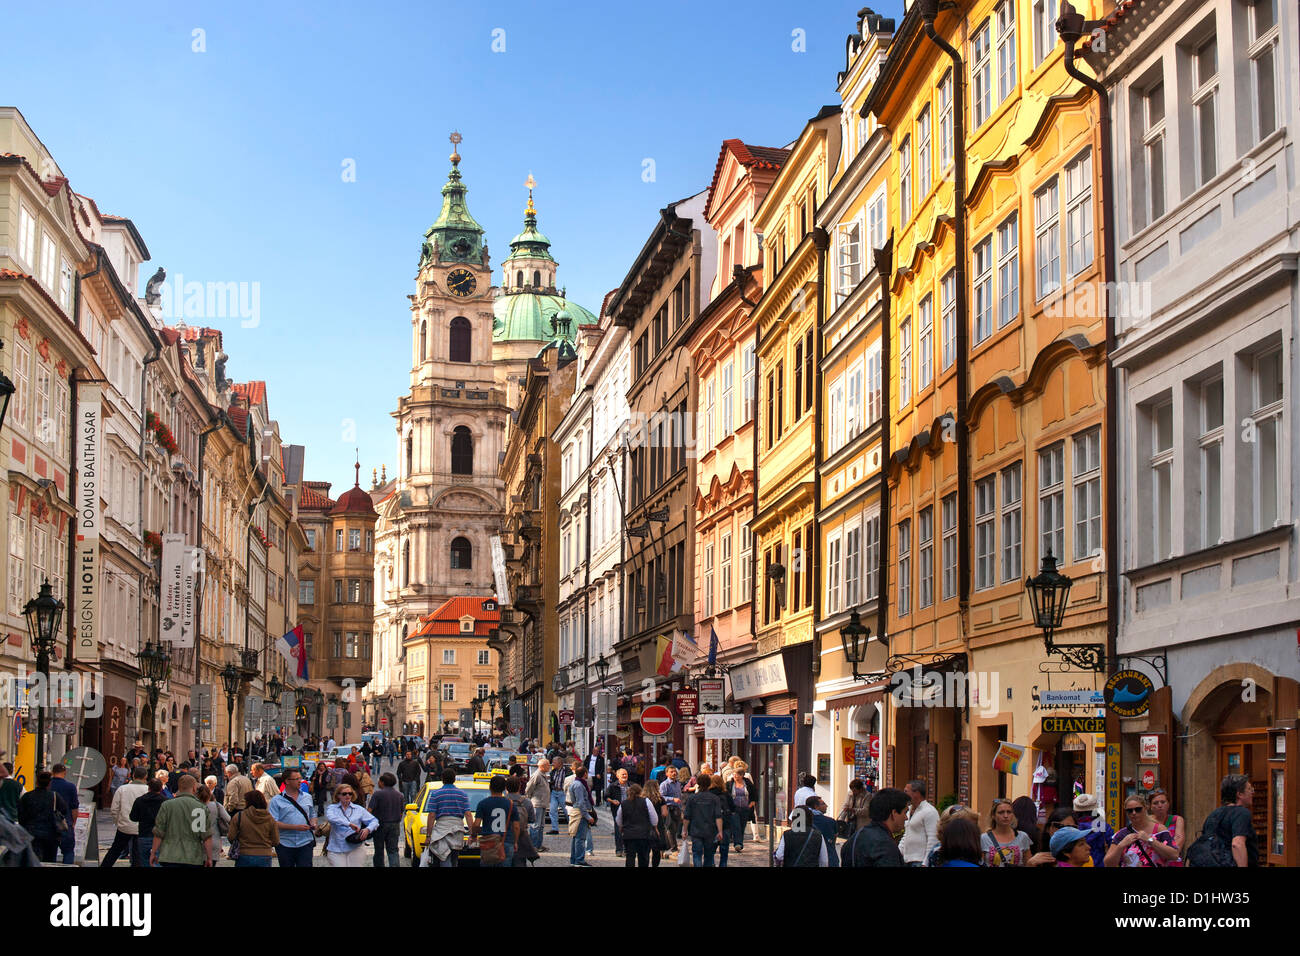 Mostecka street in Prague, the capital of the Czech Republic. - Stock Image